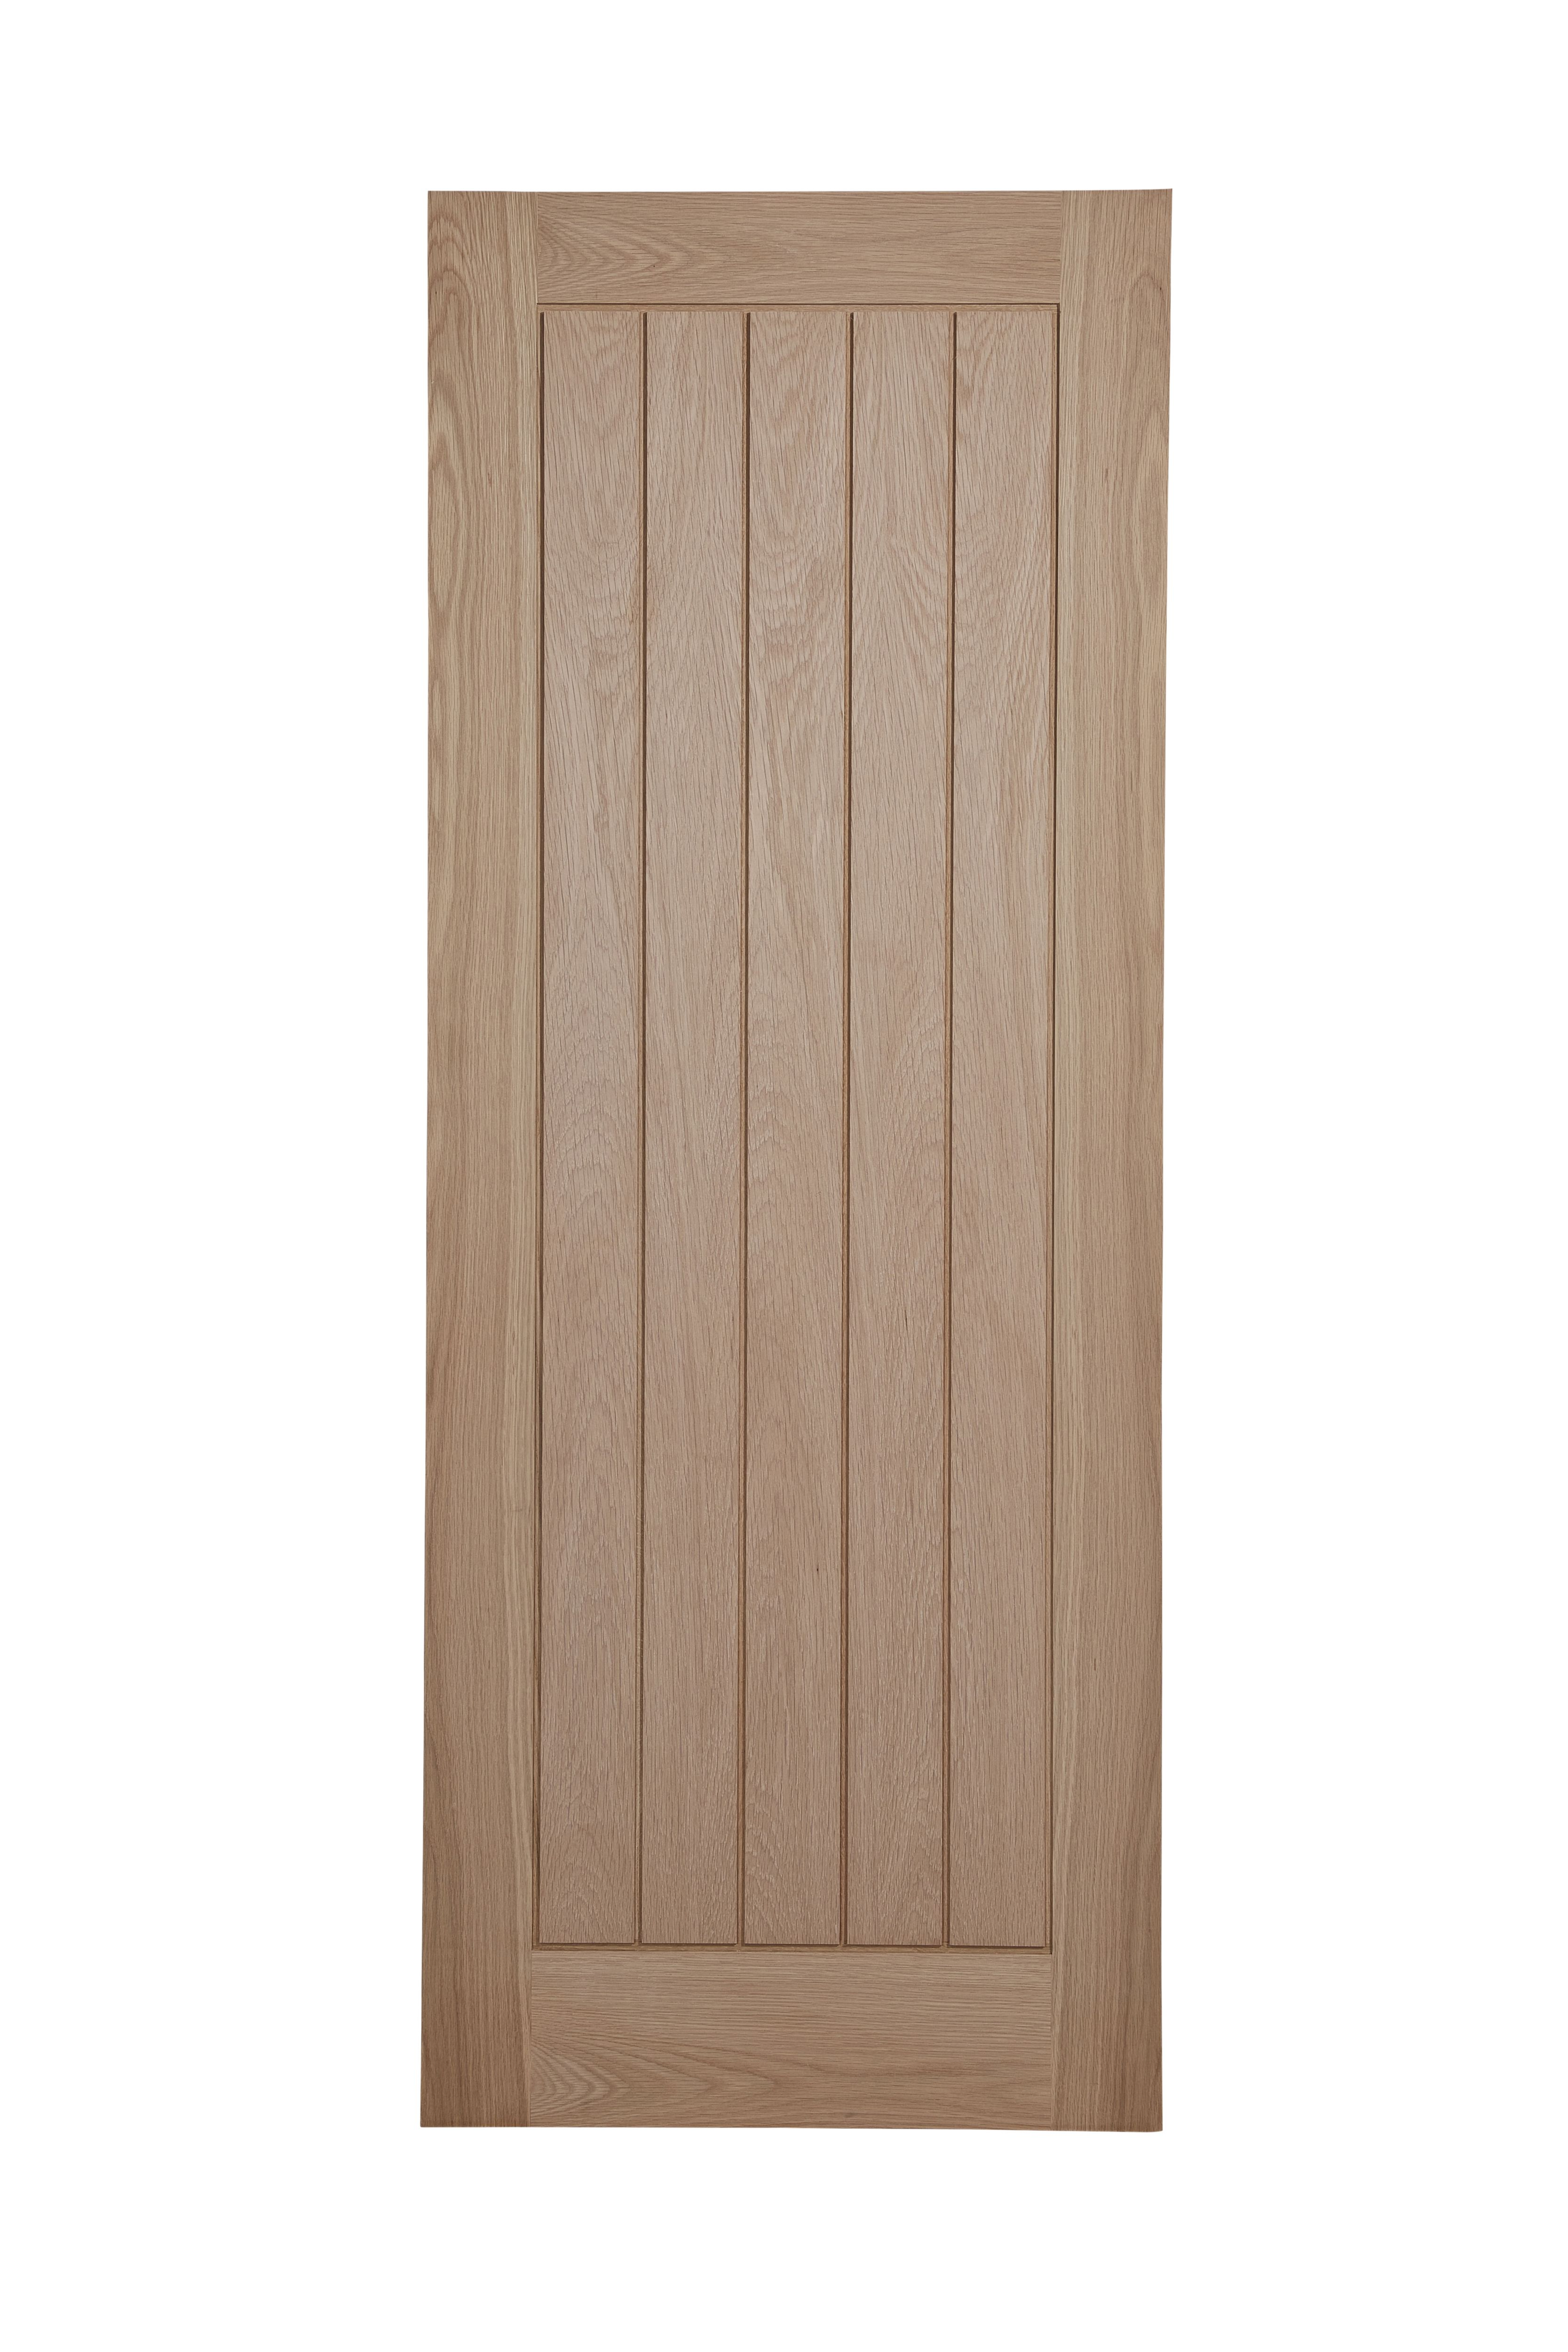 Cottage Framed Ledged And Braced Oak Veneer Unglazed Internal Standard Door, (h)1981mm (w)838mm